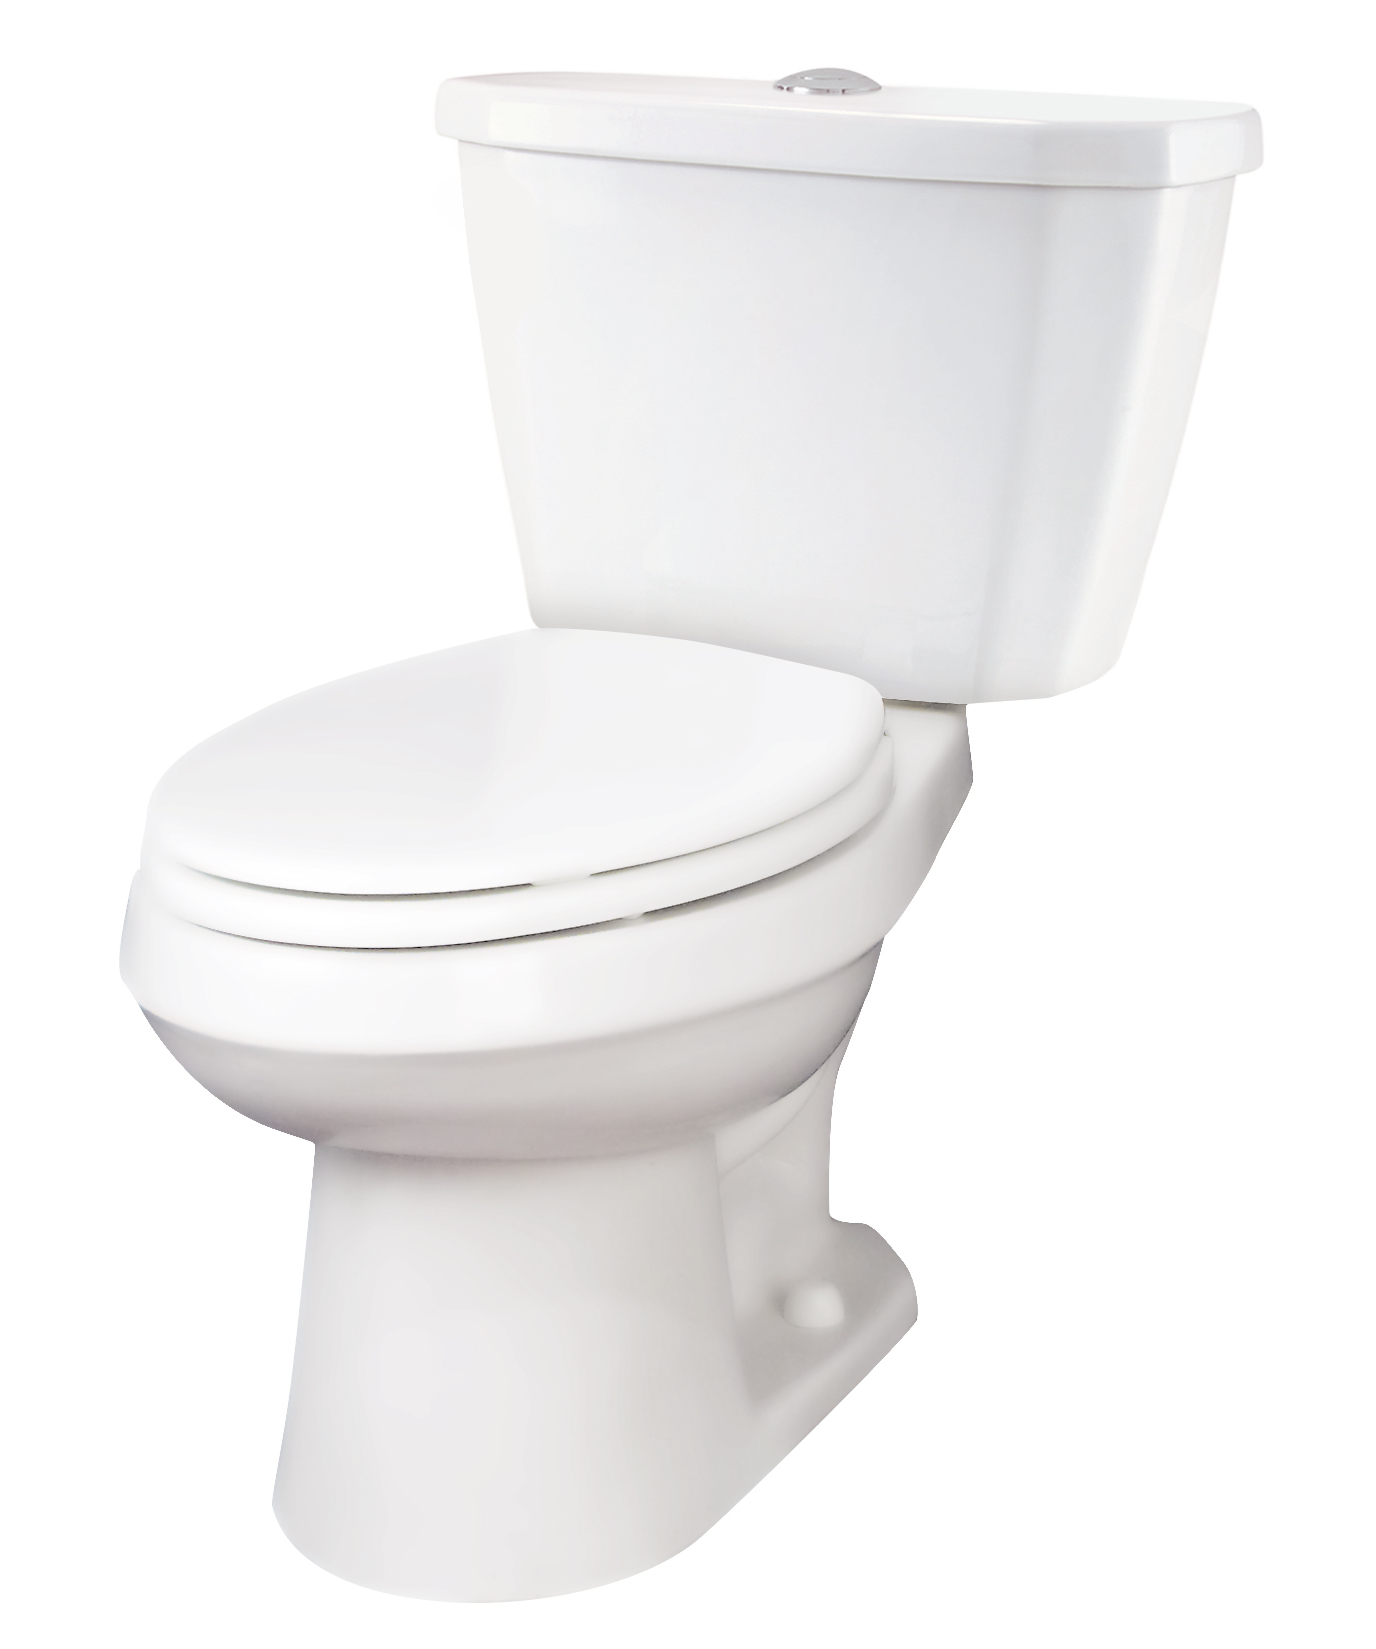 Viper 0 8 Gpf 12 Rough In Two Piece Round Front Toilet Gerber Plumbing